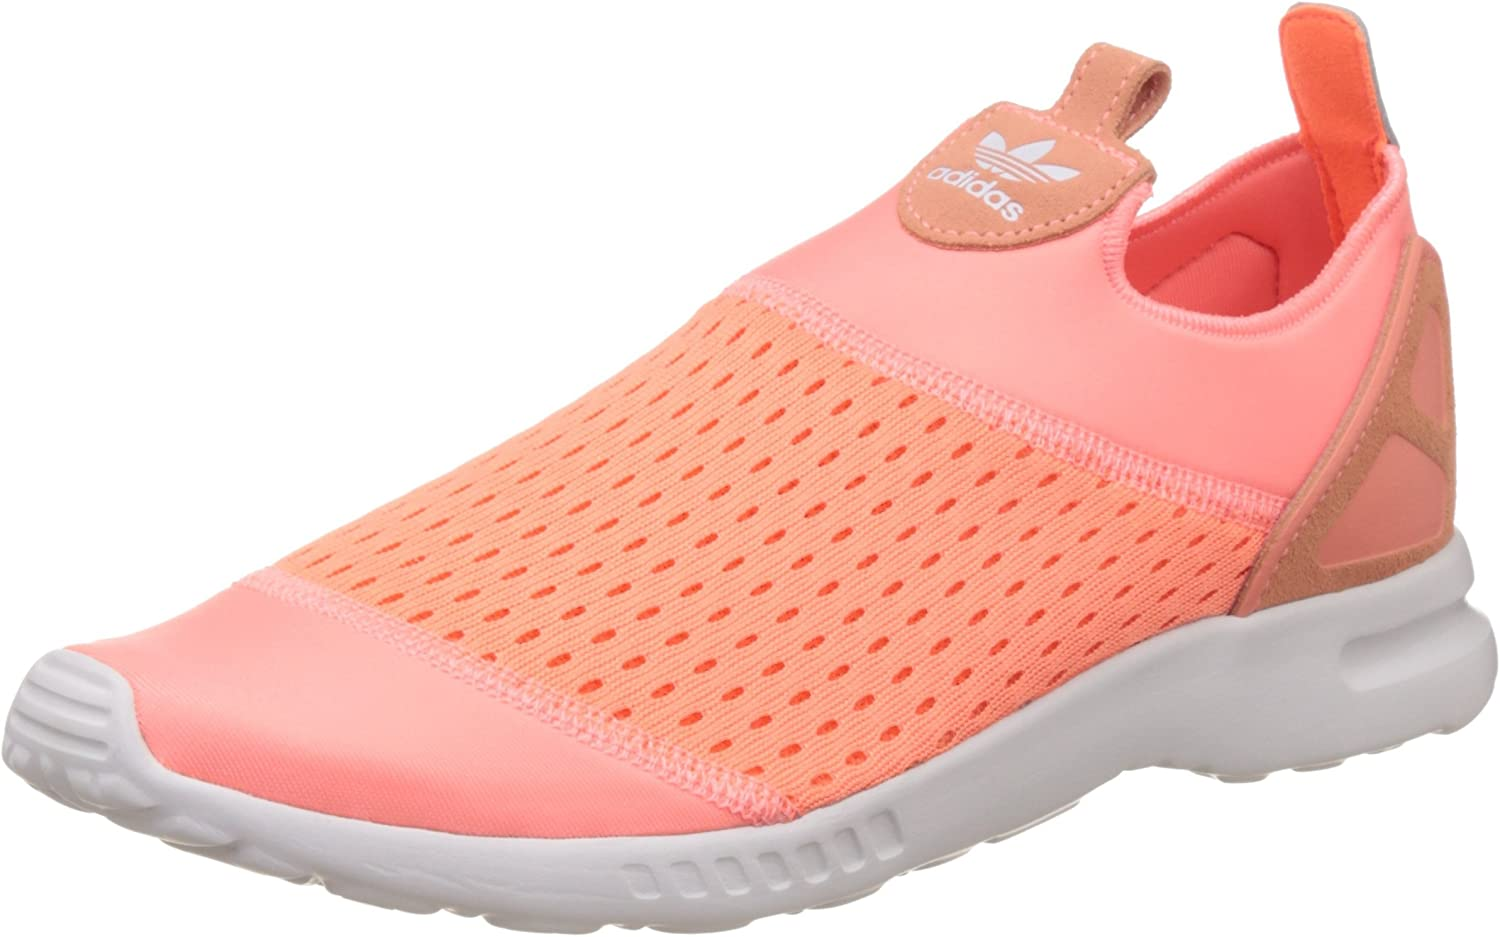 Adidas - ZX Flux Adv Smooth Slip ON W